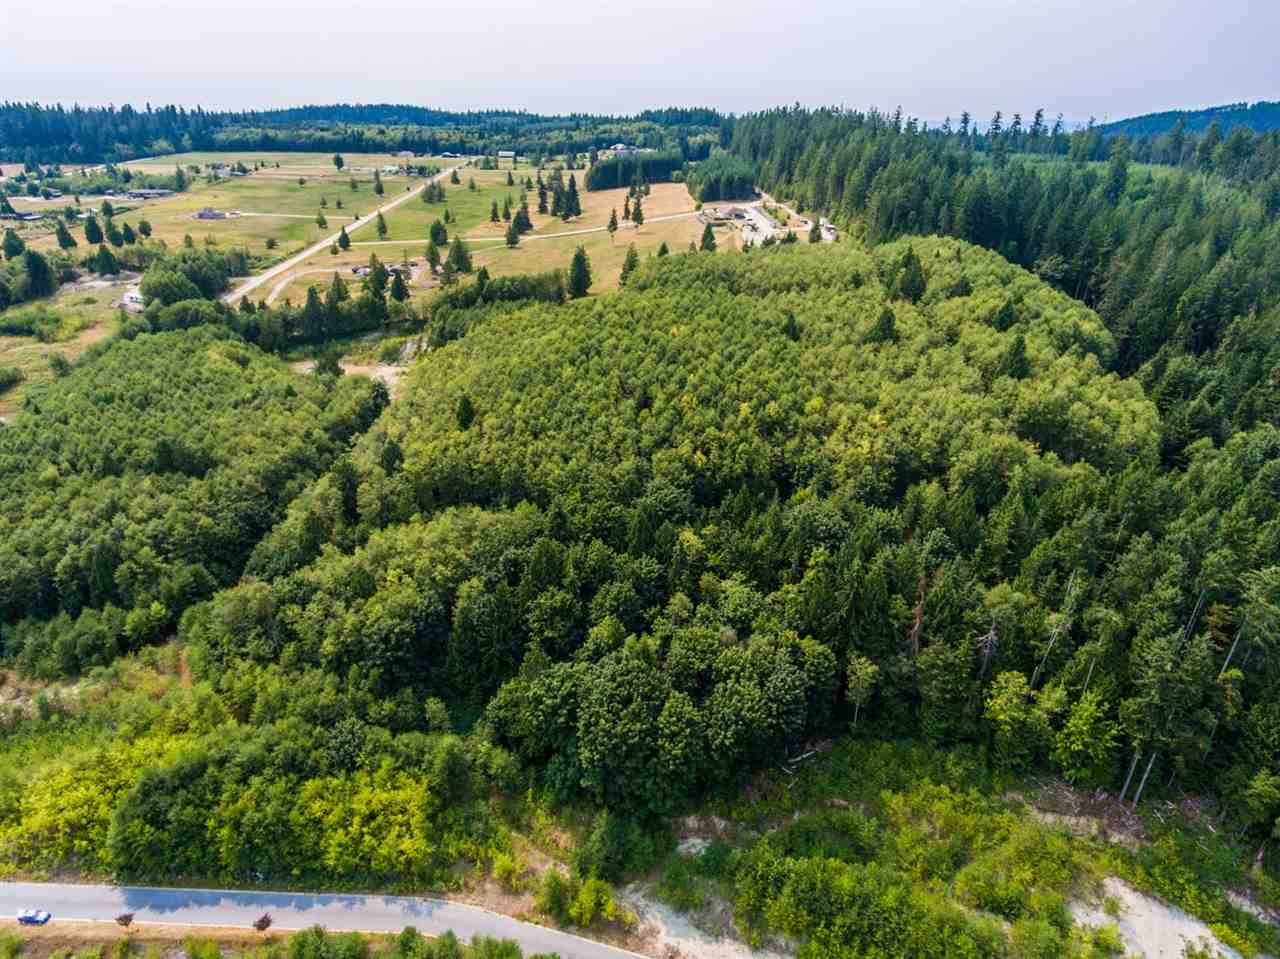 27.52 Acre Development property on the Sechelt Inlet in one of the most gorgeous areas of the Sunshine Coast. This property offers an excellent opportunity to the investor looking for development land close to downtown Sechelt. Please contact listing Realtor for an information package.